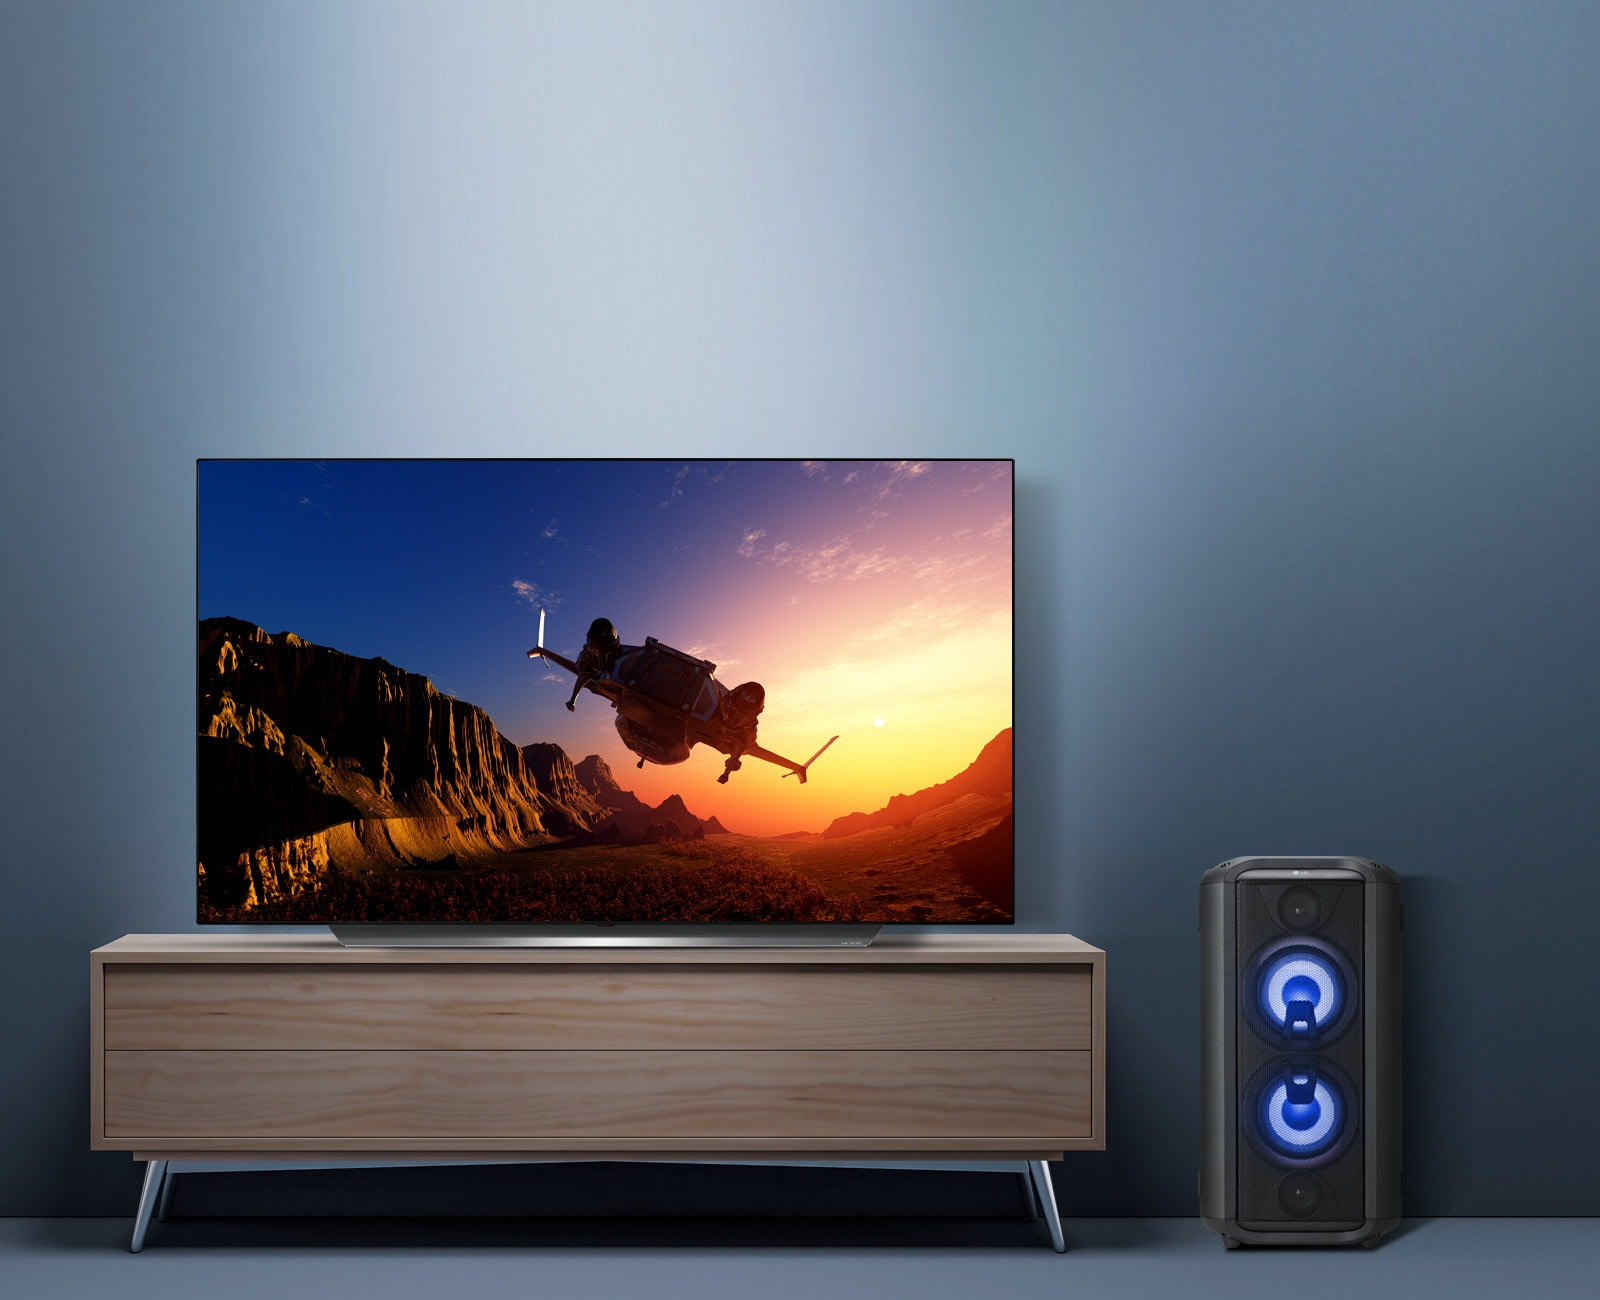 https://www.lg.com/rs/images/AV/features/CAV-XBOOM-RL4-08-TV-Sync-Desktop.jpg